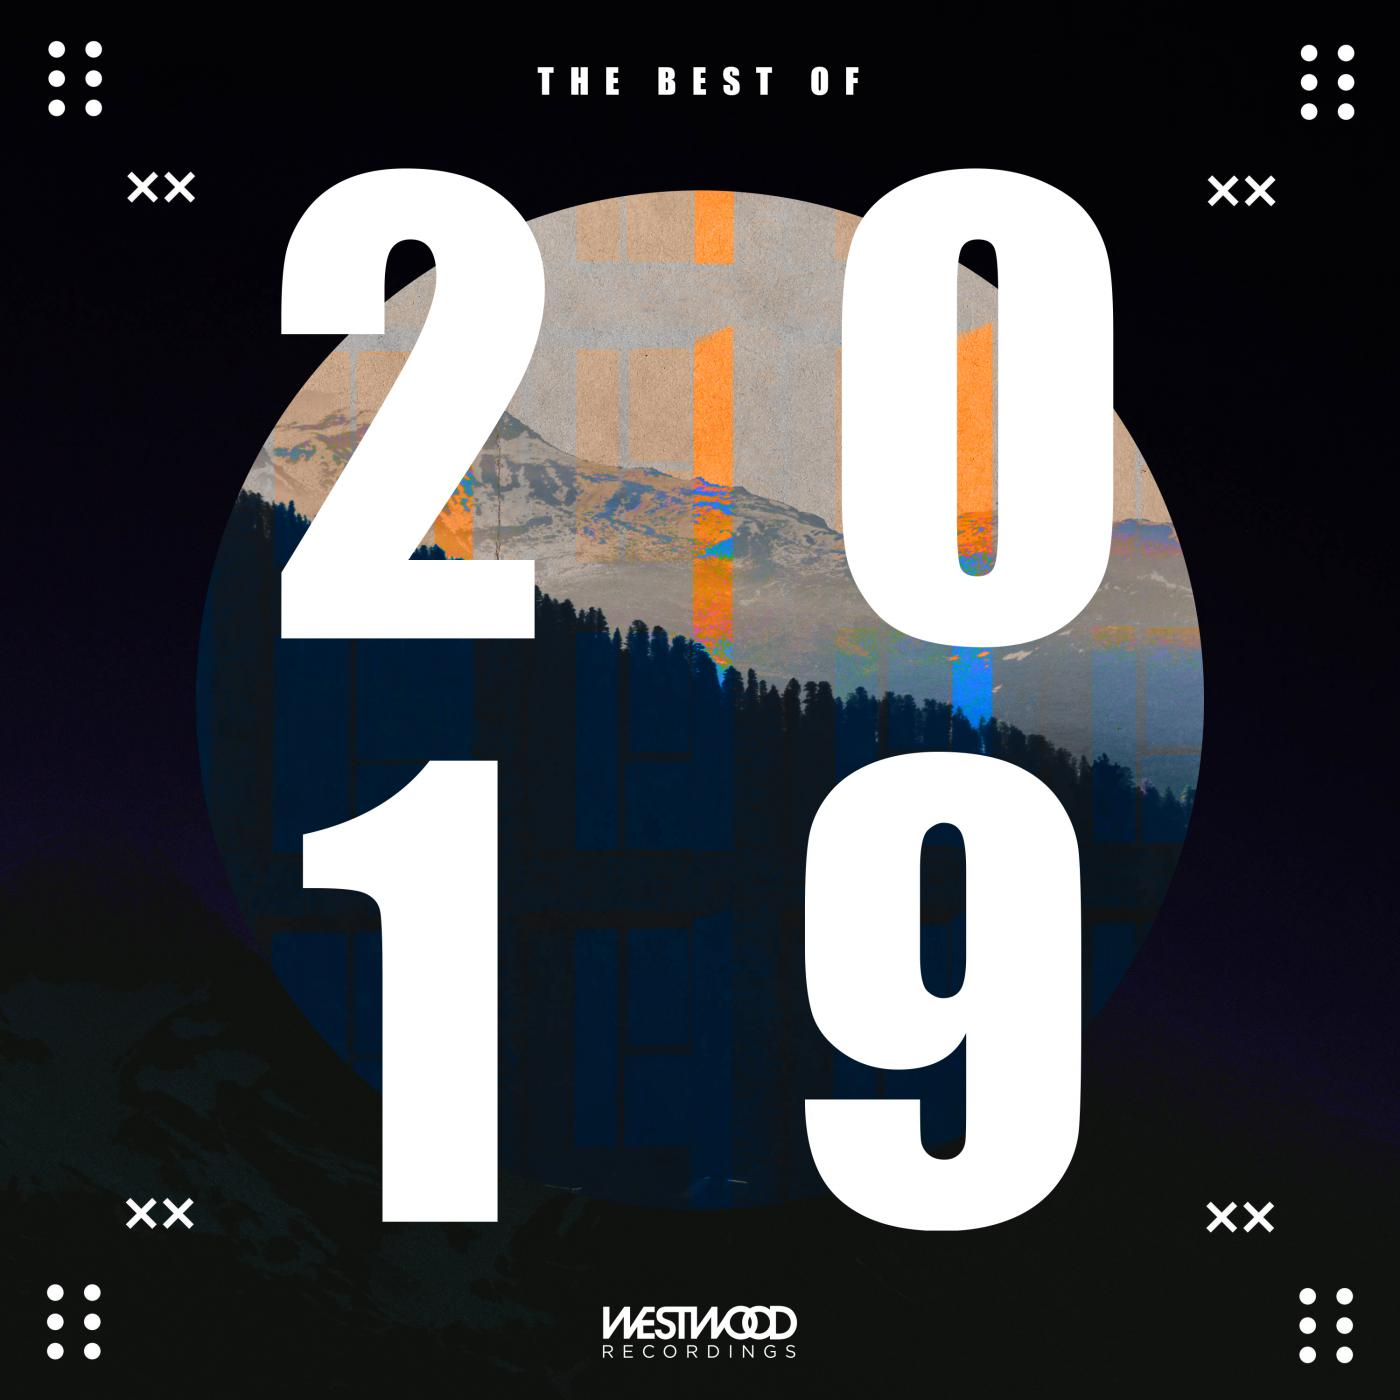 The Best of Westwood Recordings 2019